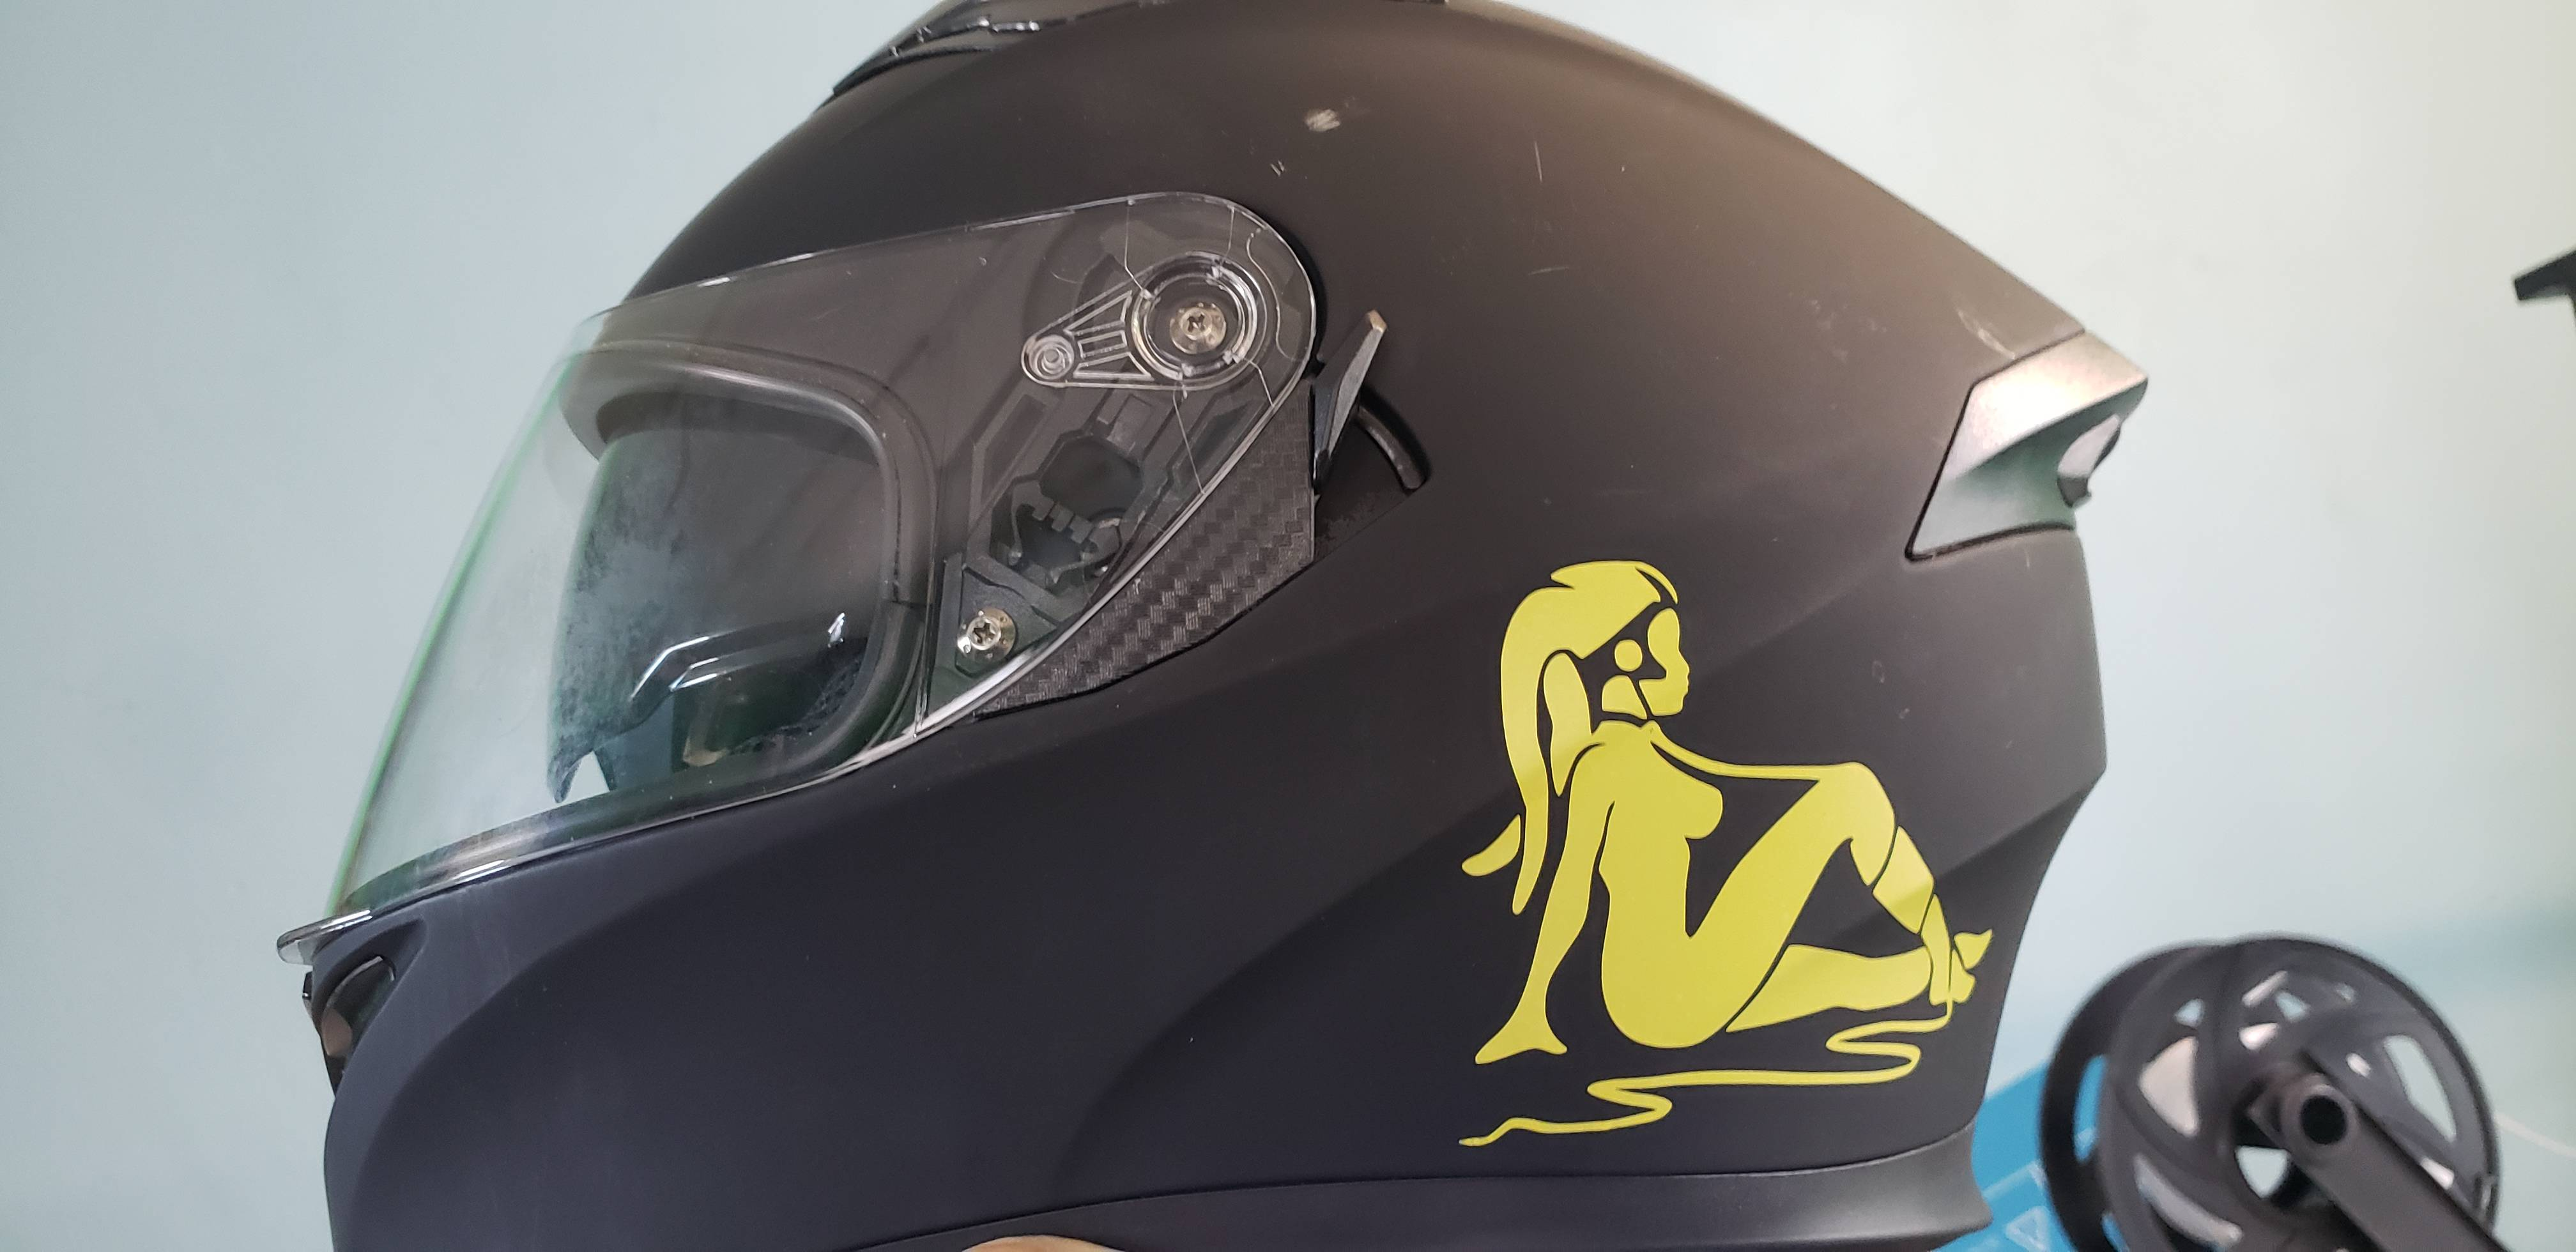 Added some flair to my helmet